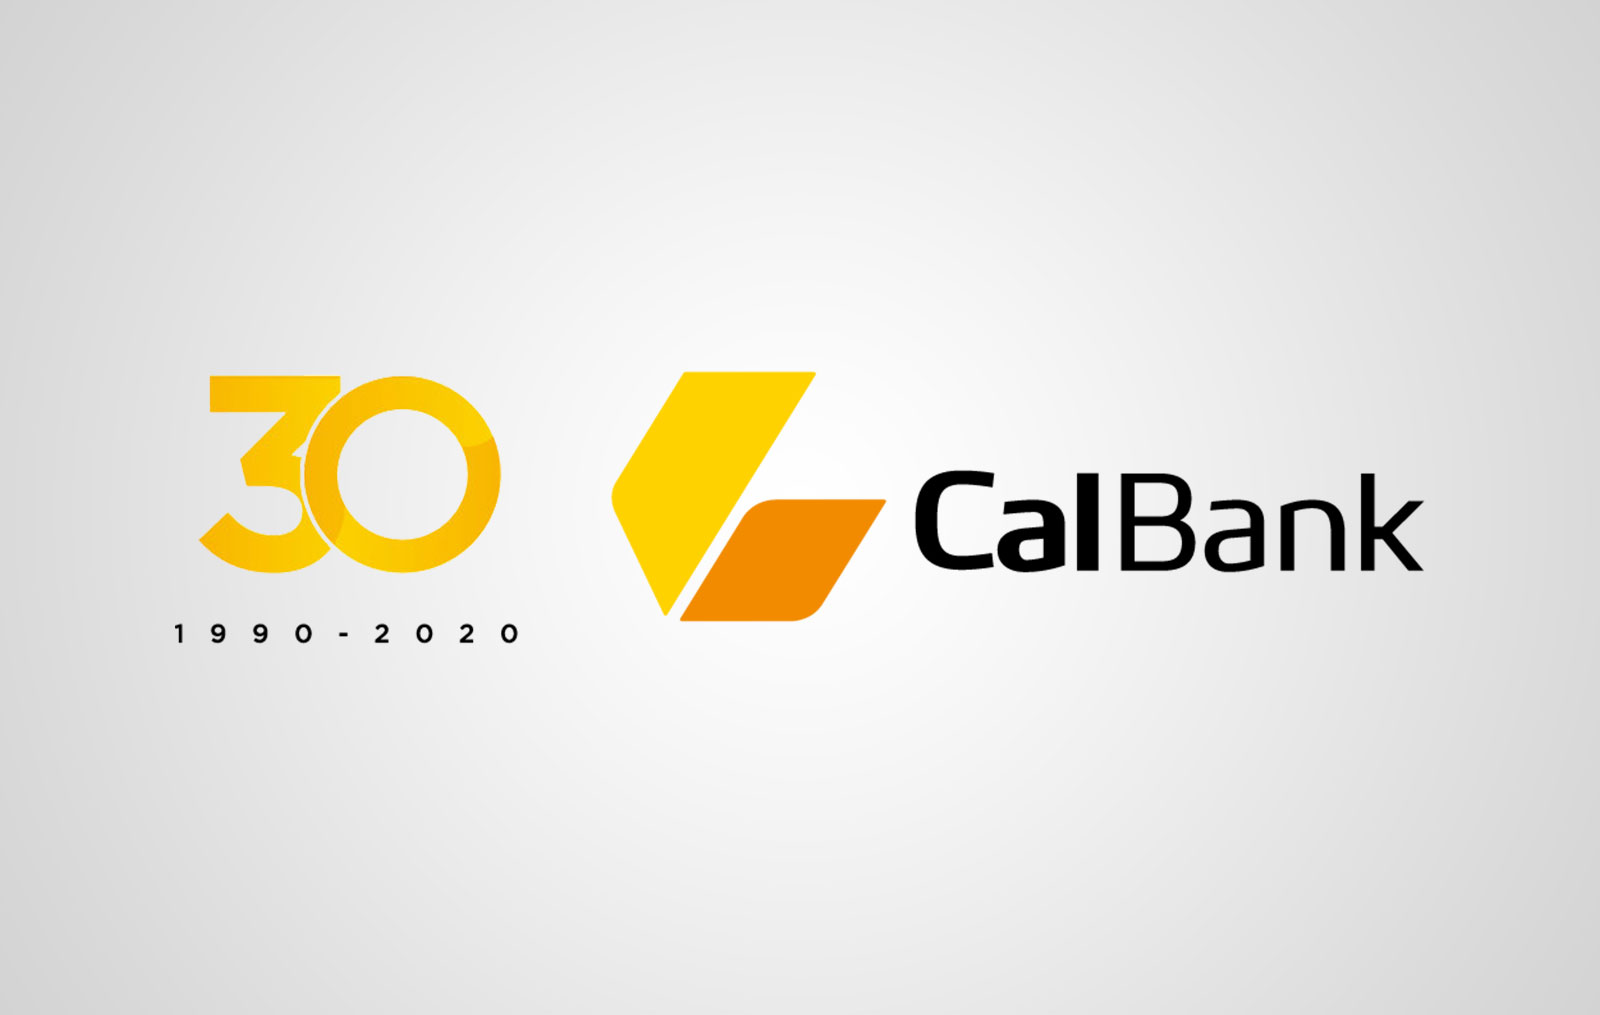 Celebrating the 30th Anniversary of CalBank